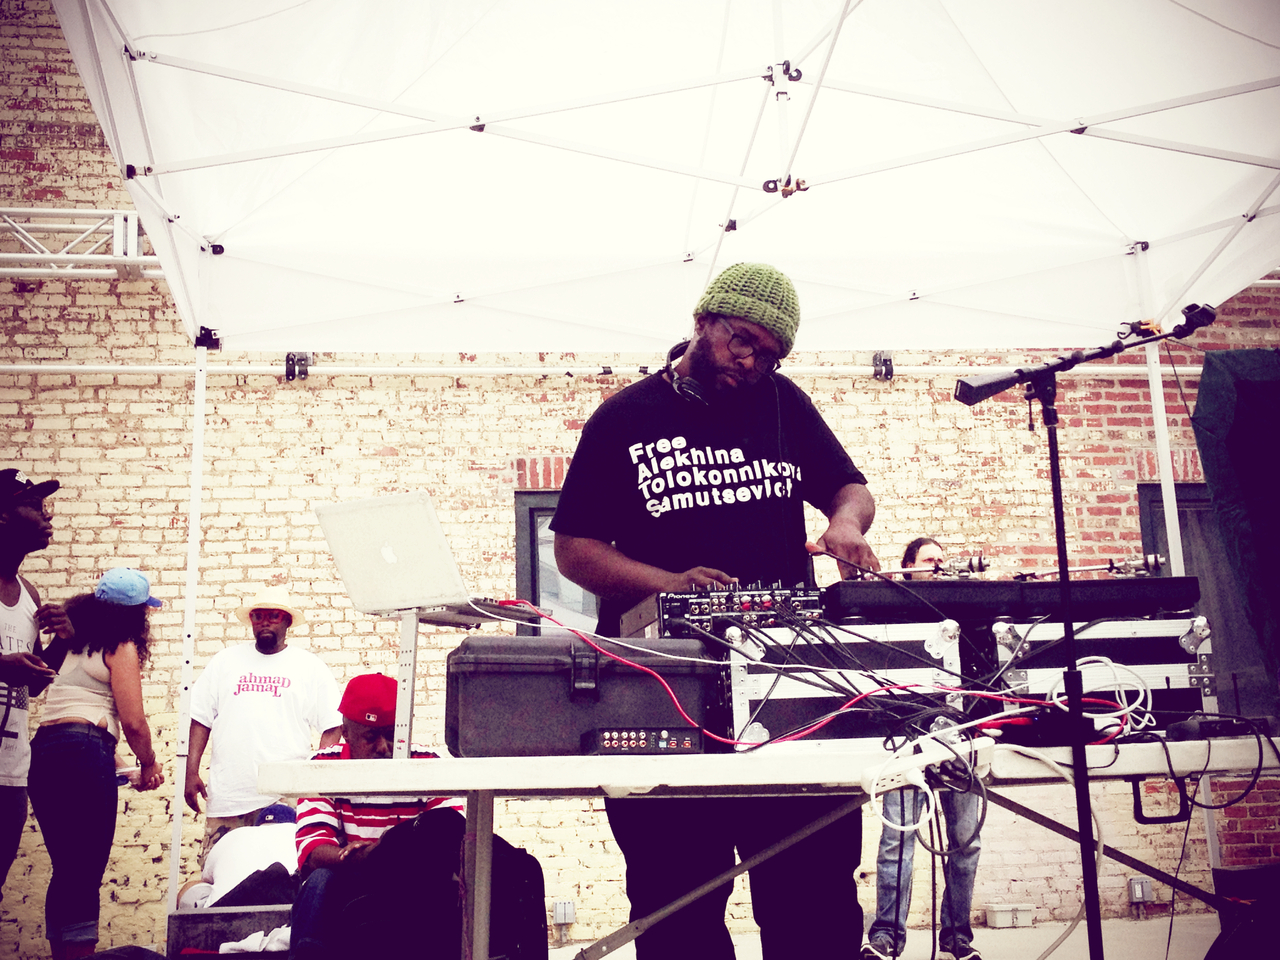 Questlove spinning at the BK Flea in Philly #peppersearching #pepper #photos #dj #spinning #flea